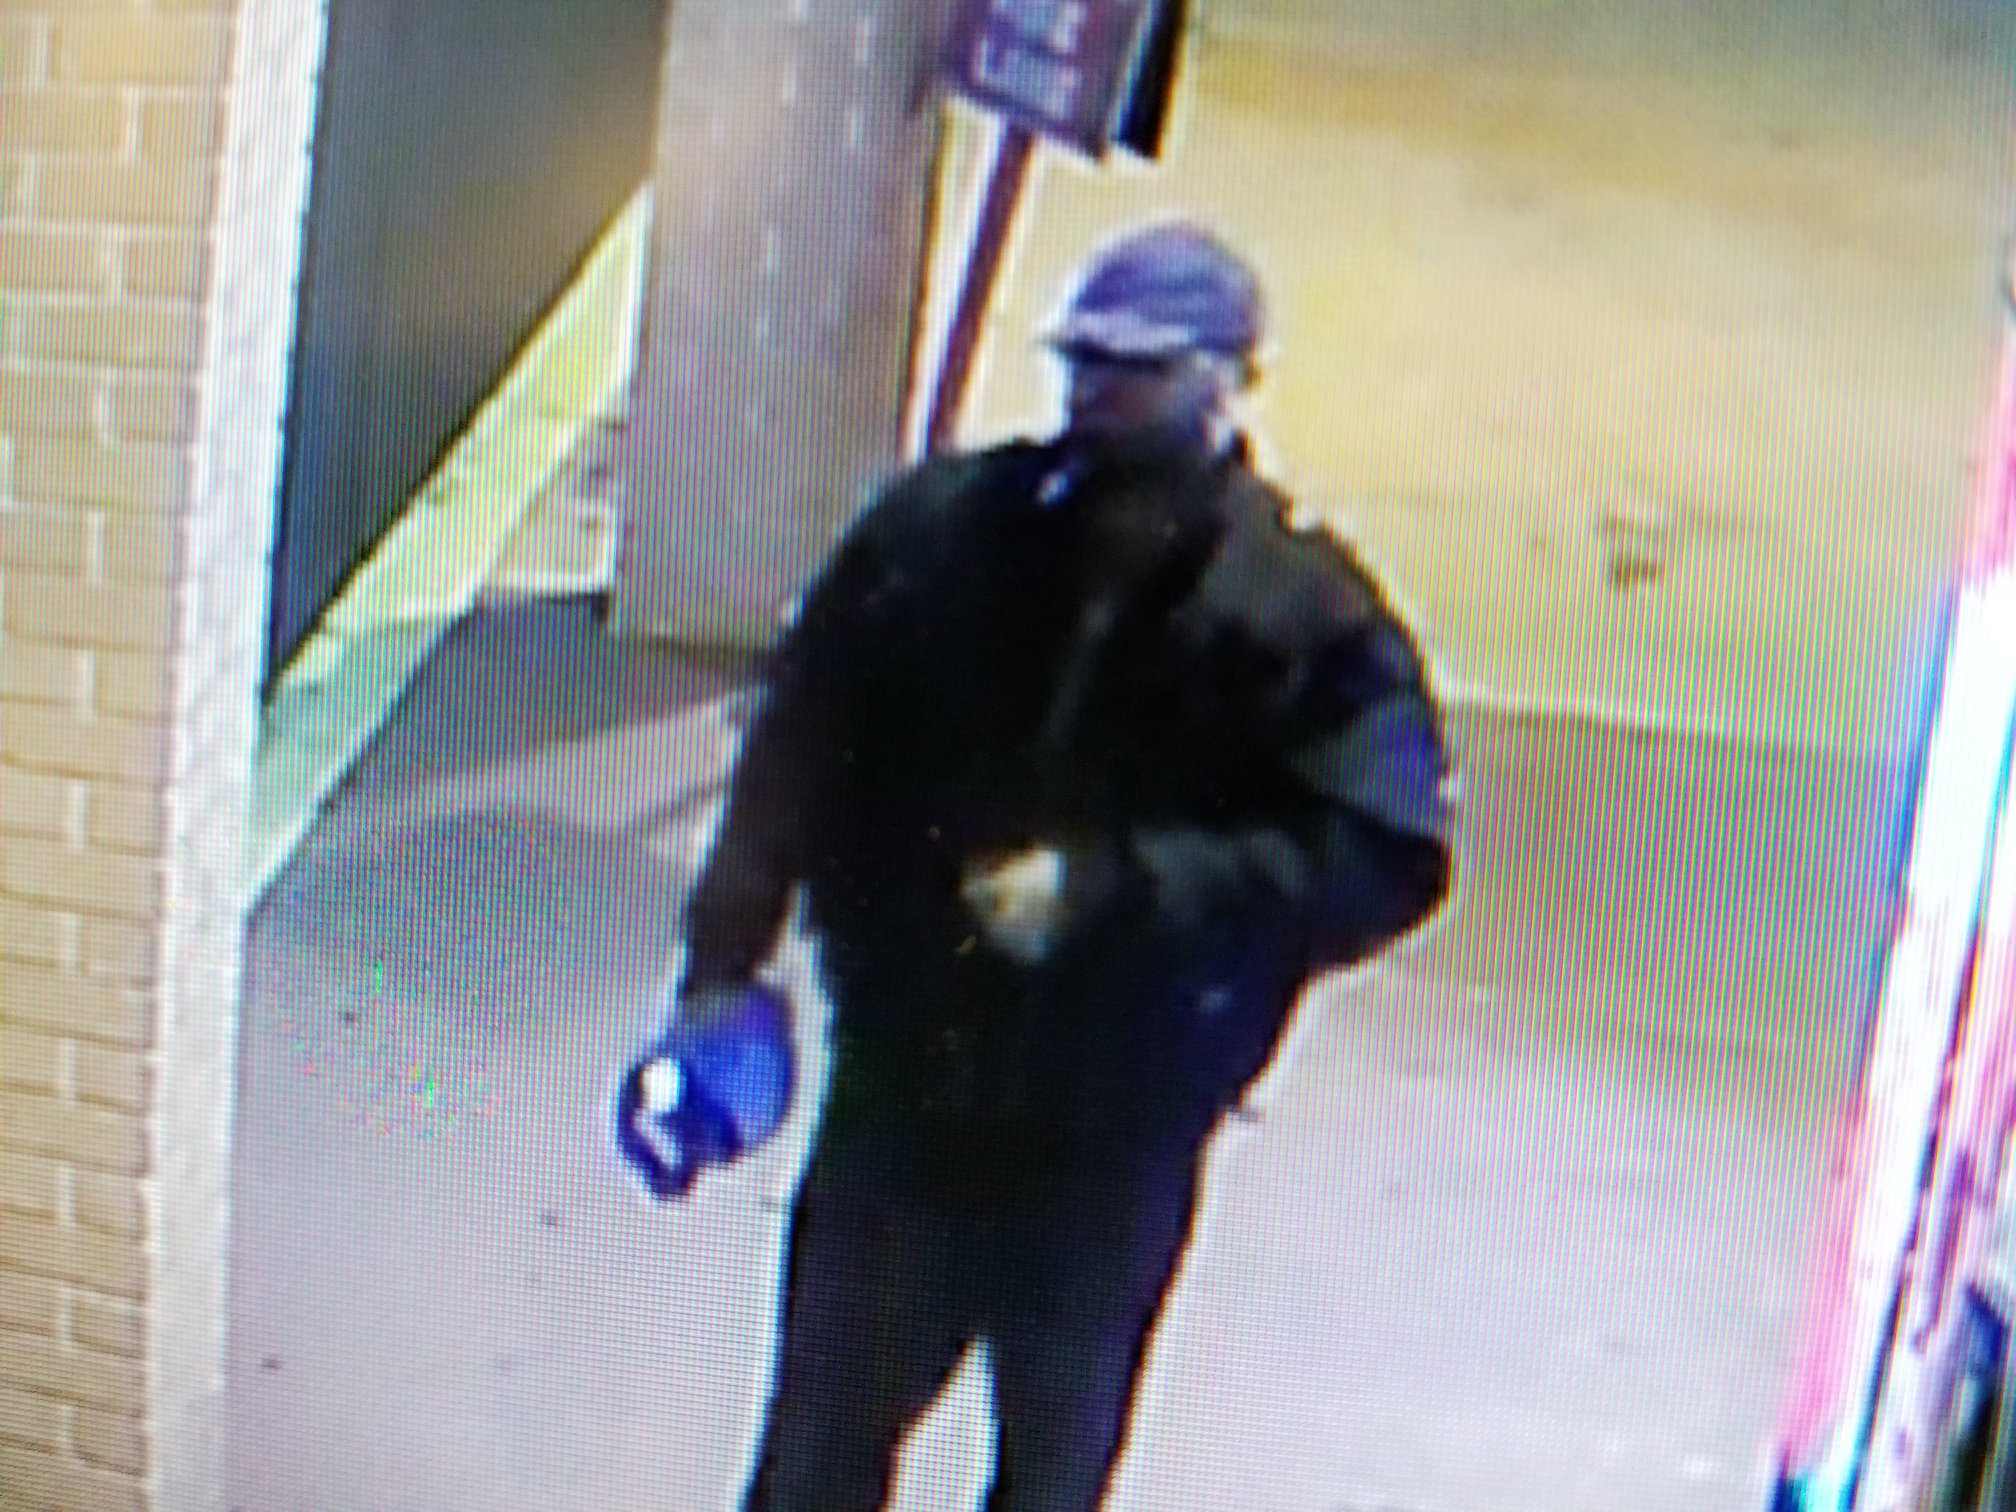 Sylvester police need your help identifying a man believed to have been stealing from drink machines at Piggly Wiggly. / Photo: Sylvester Police Department